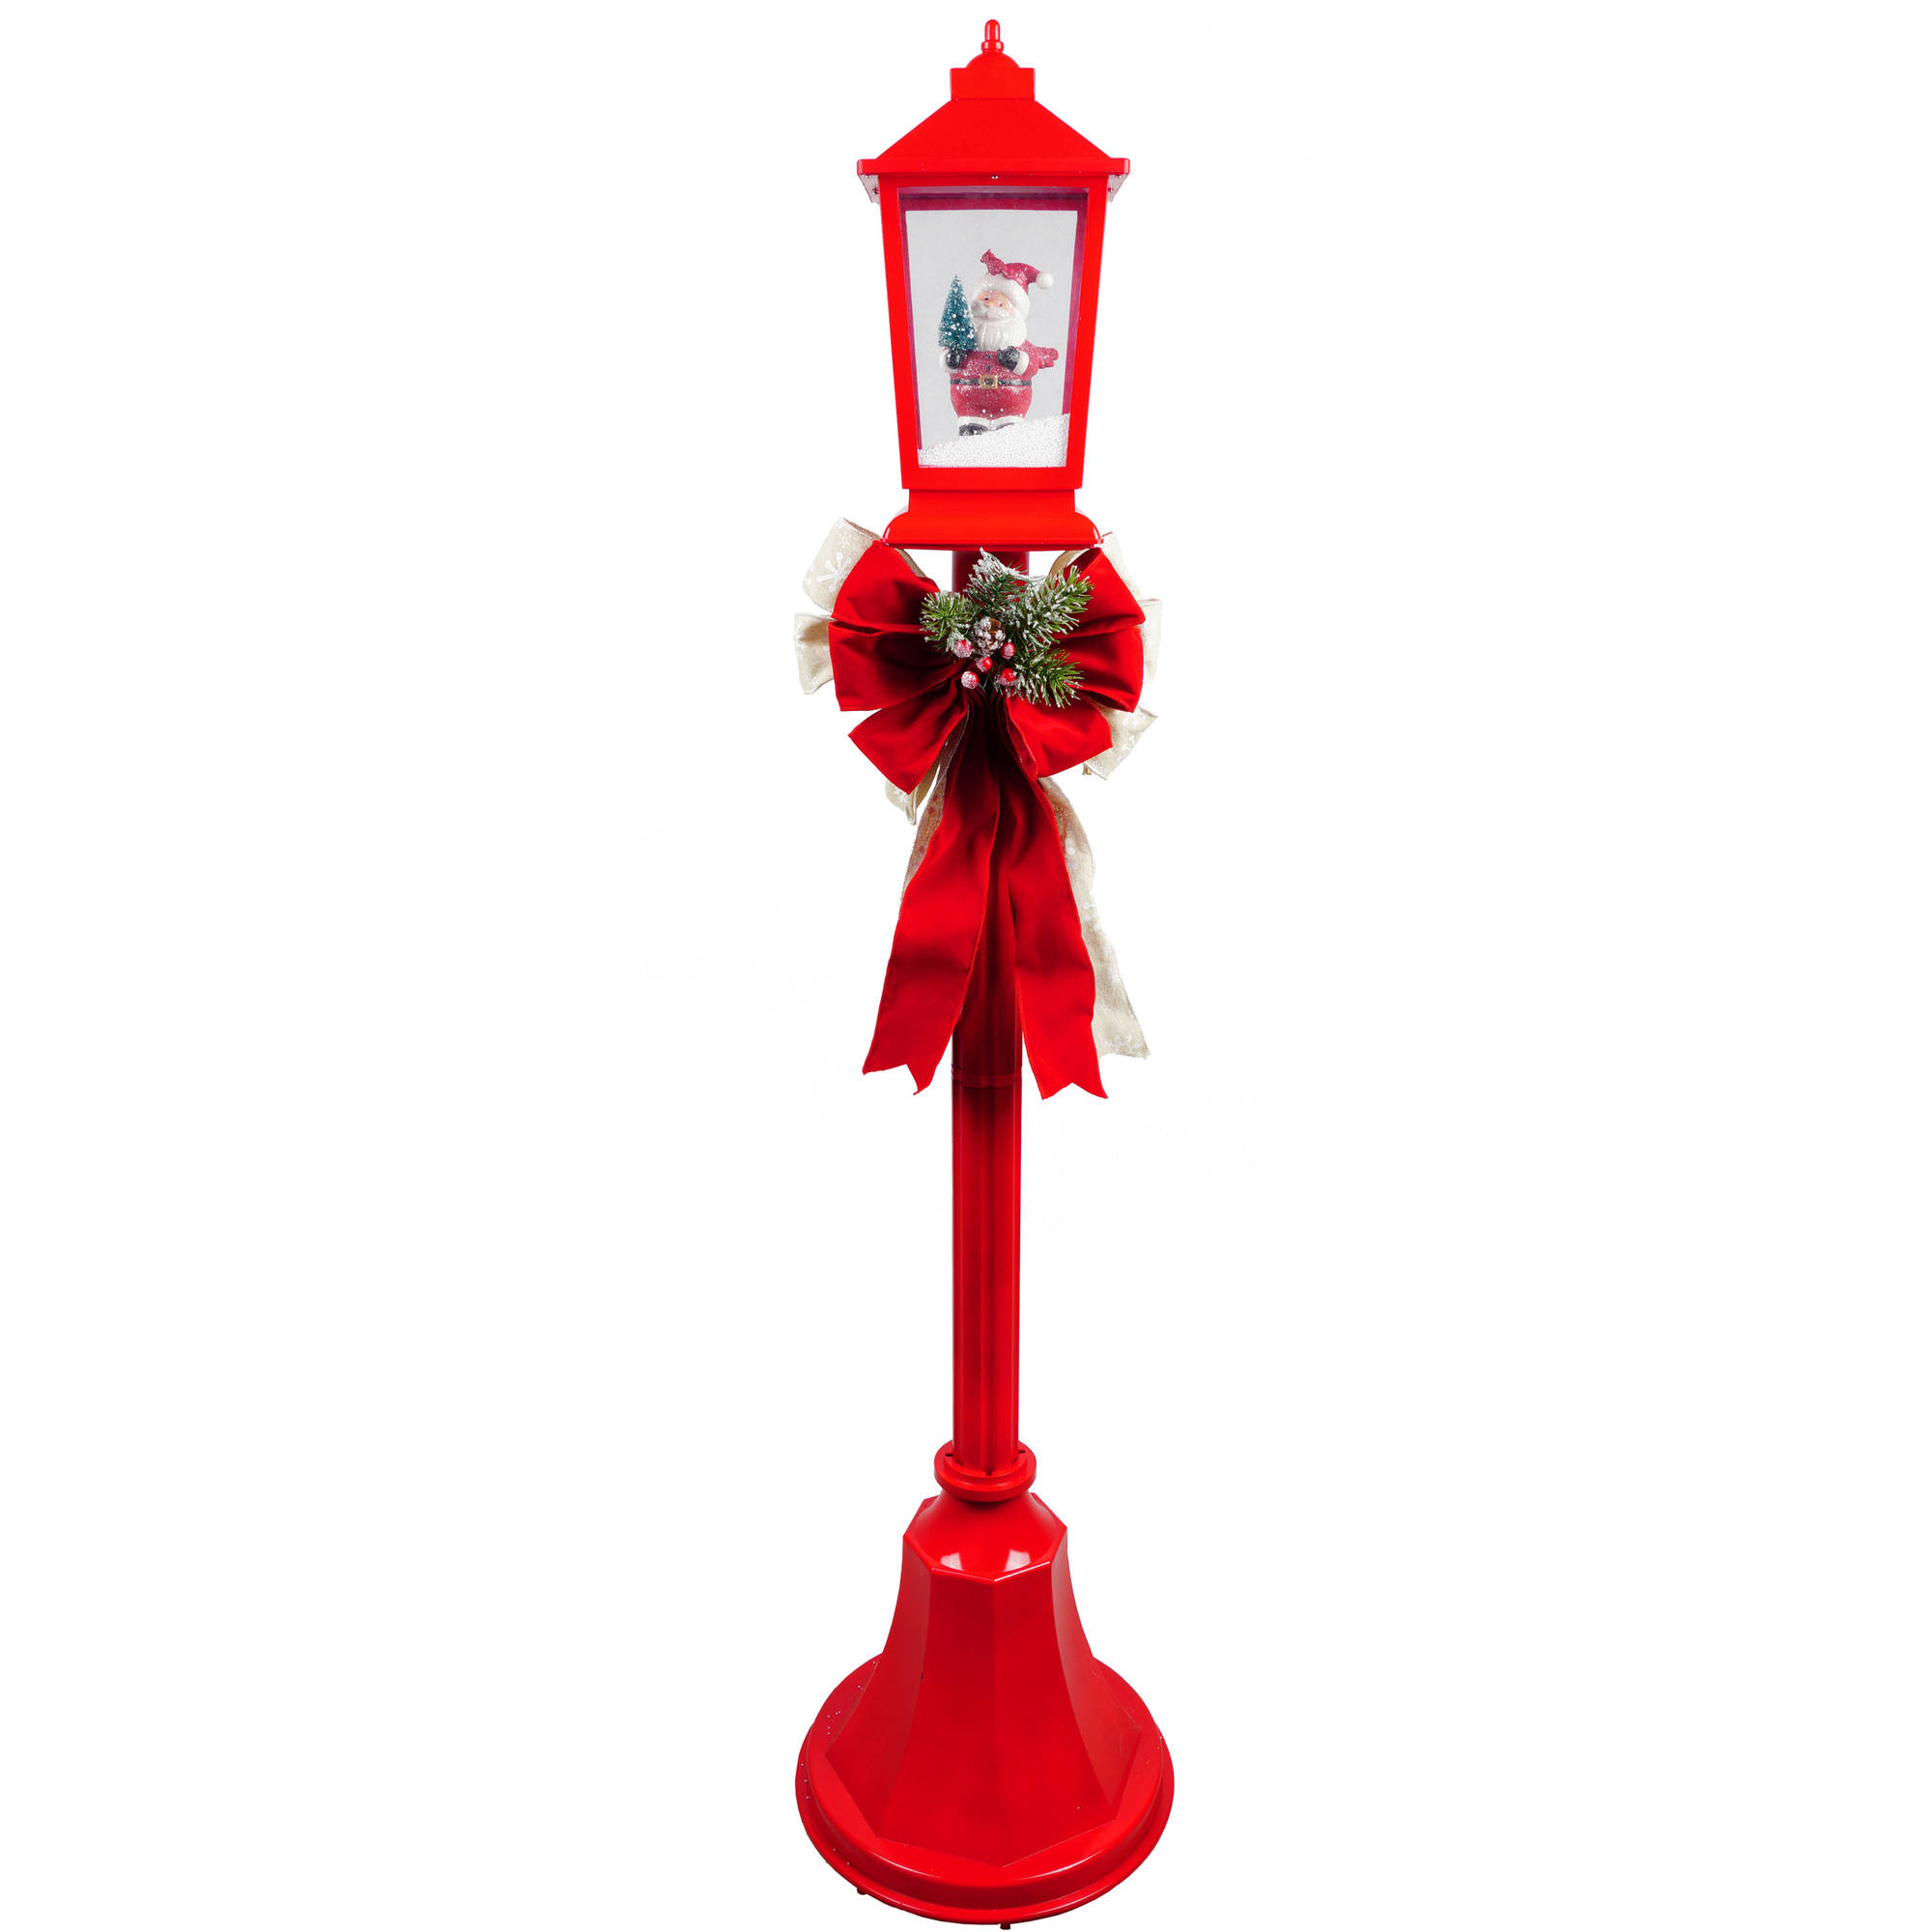 Captivating Holiday Time Christmas Lamp Posts With Snow Blowing Scenes Clear Light,  Playing Christmas Songs